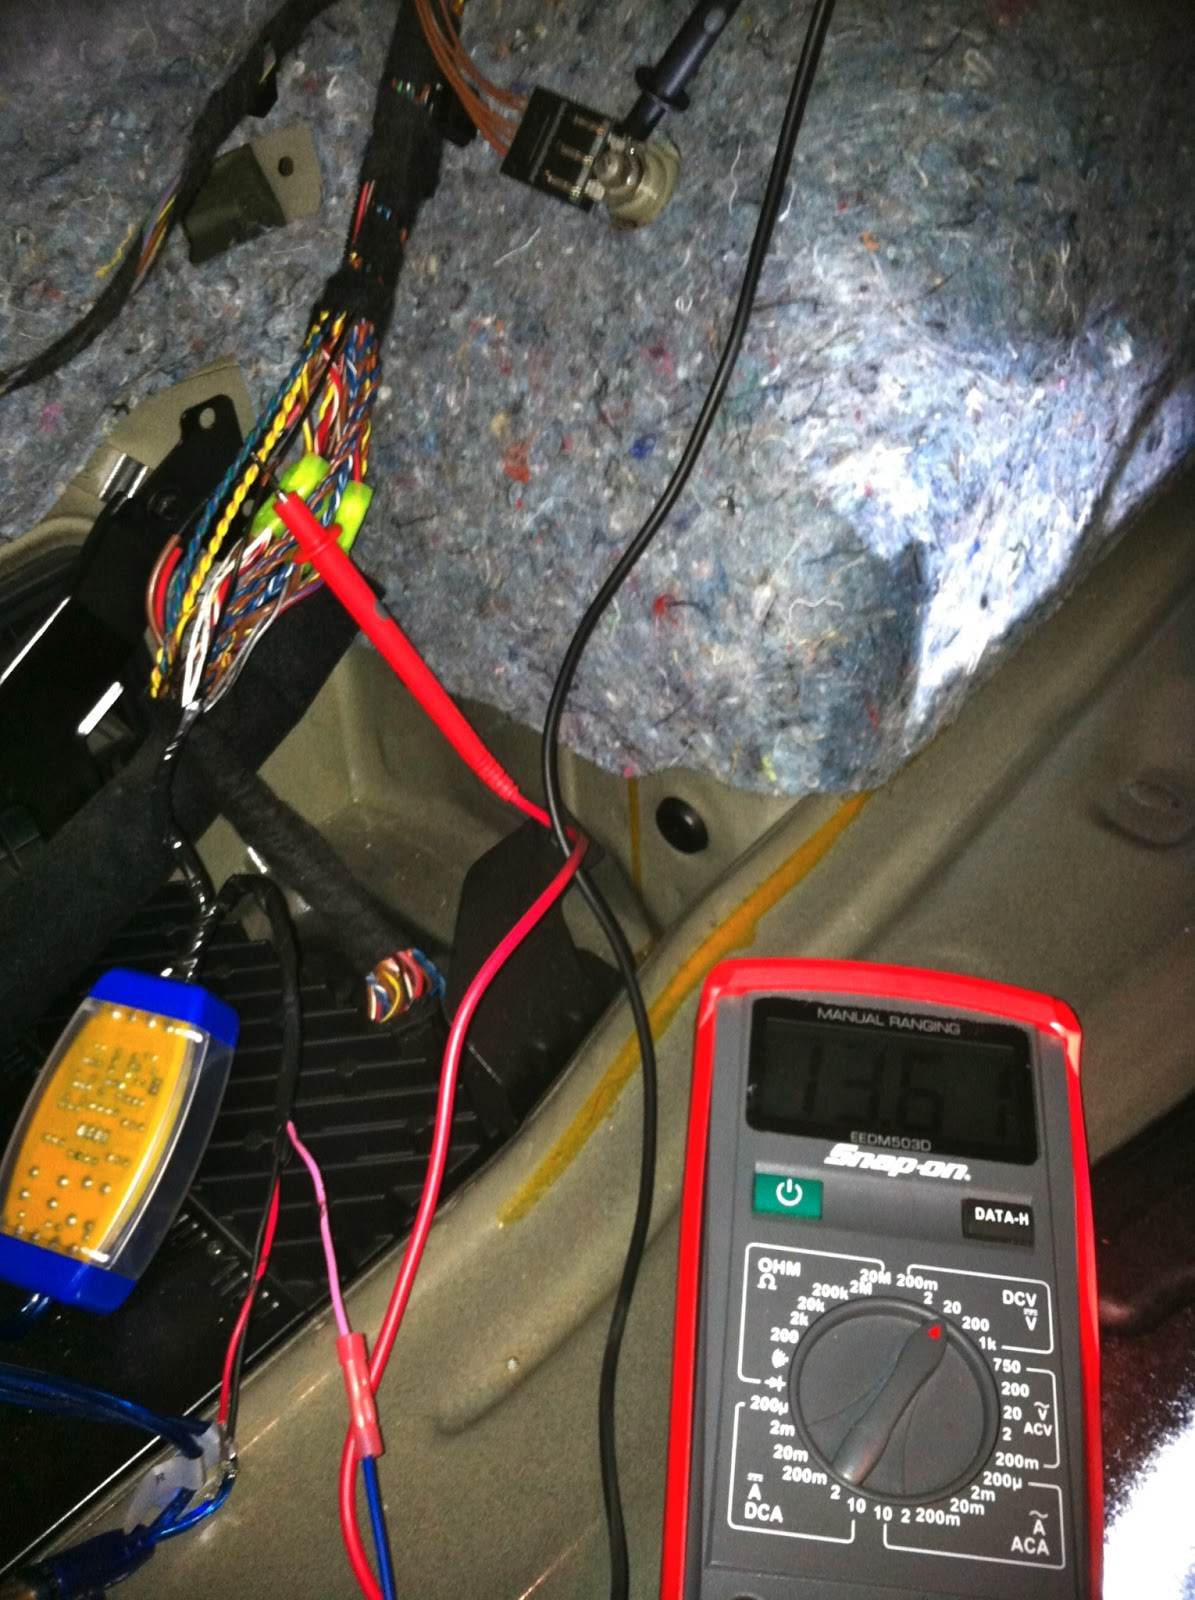 Pretty Wiring Diagram For Les Paul Guitar Tiny Bbbind Catalog Solid Energy Meter Wiring Diagram Solar Panels Wiring Diagram Installation Young Solar Panel Wire Diagram WhiteWiring A Fuse Panel Car Audio Tips Tricks And How To\u0027s : BMW Mono Amp Install!